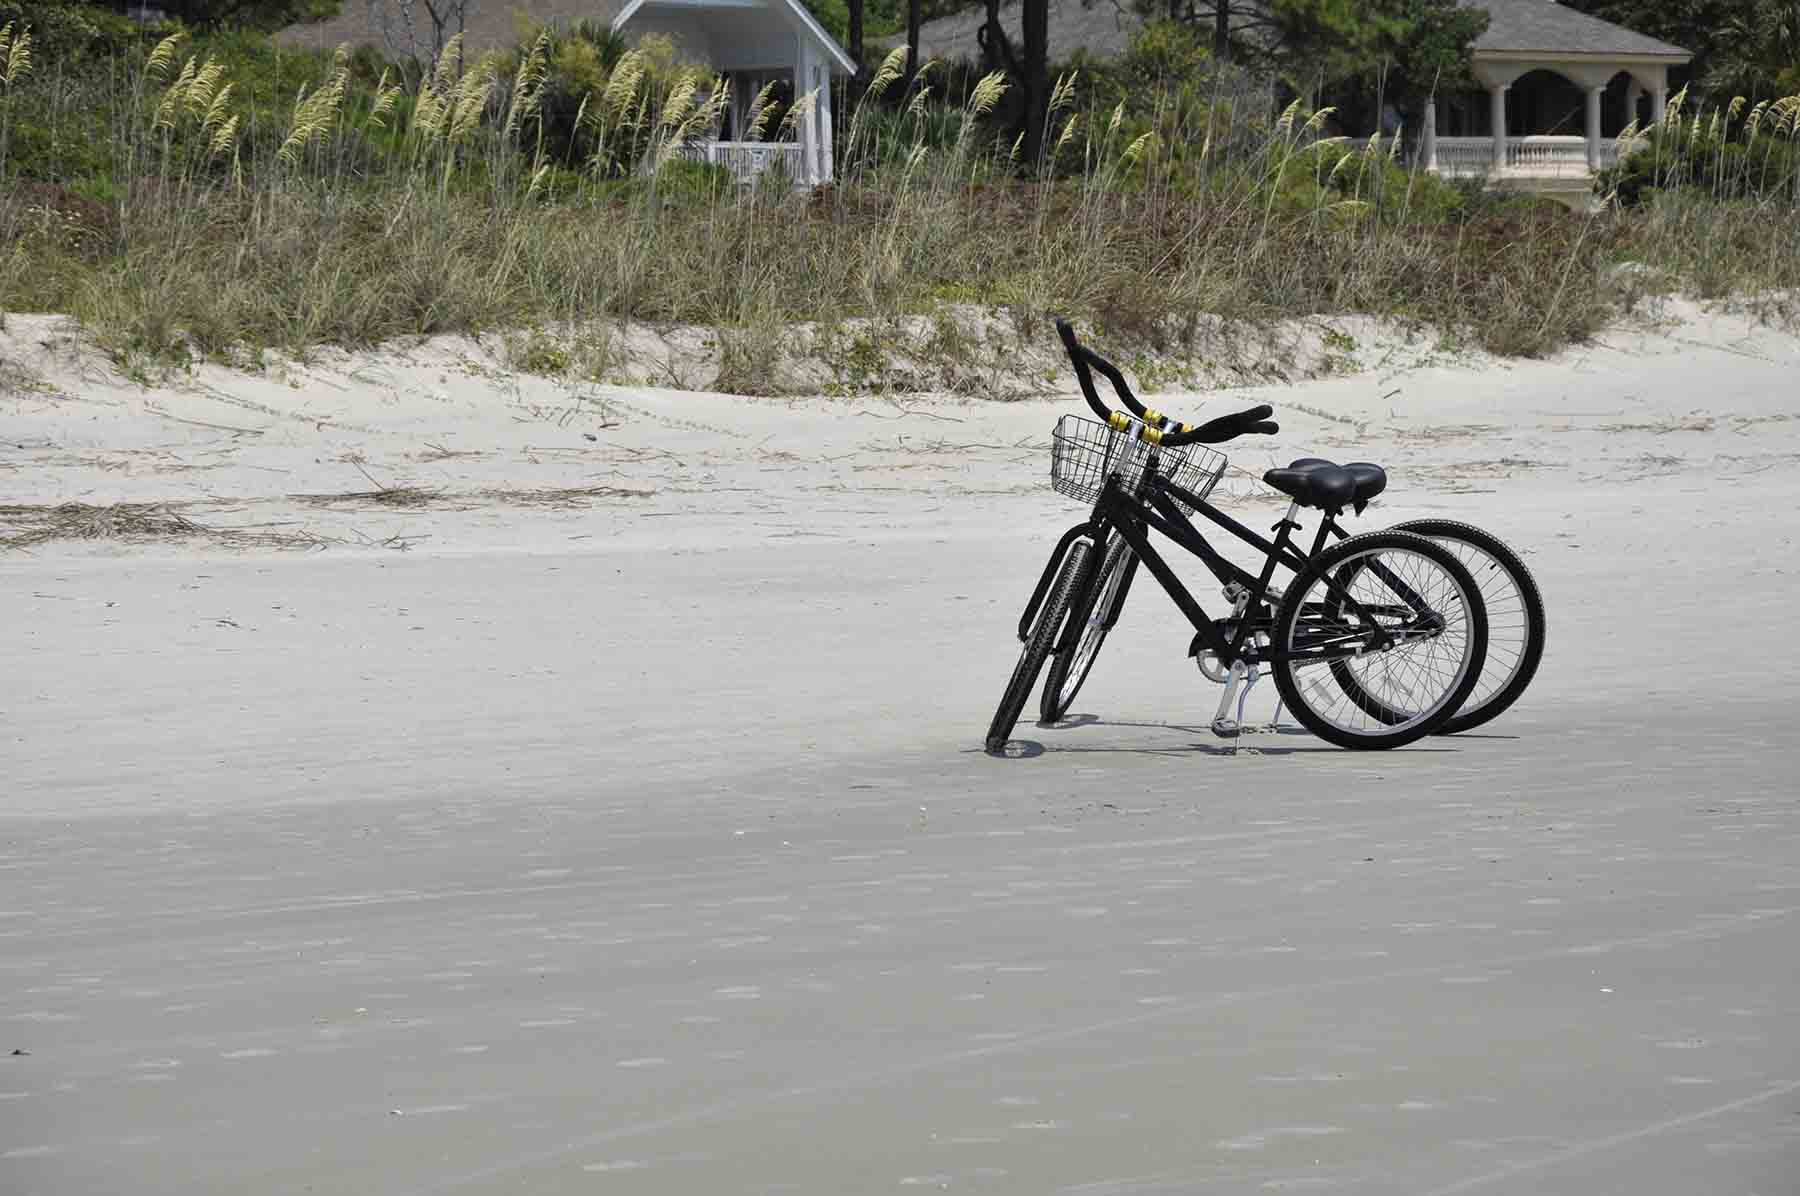 Bike on the beach at Hilton Head